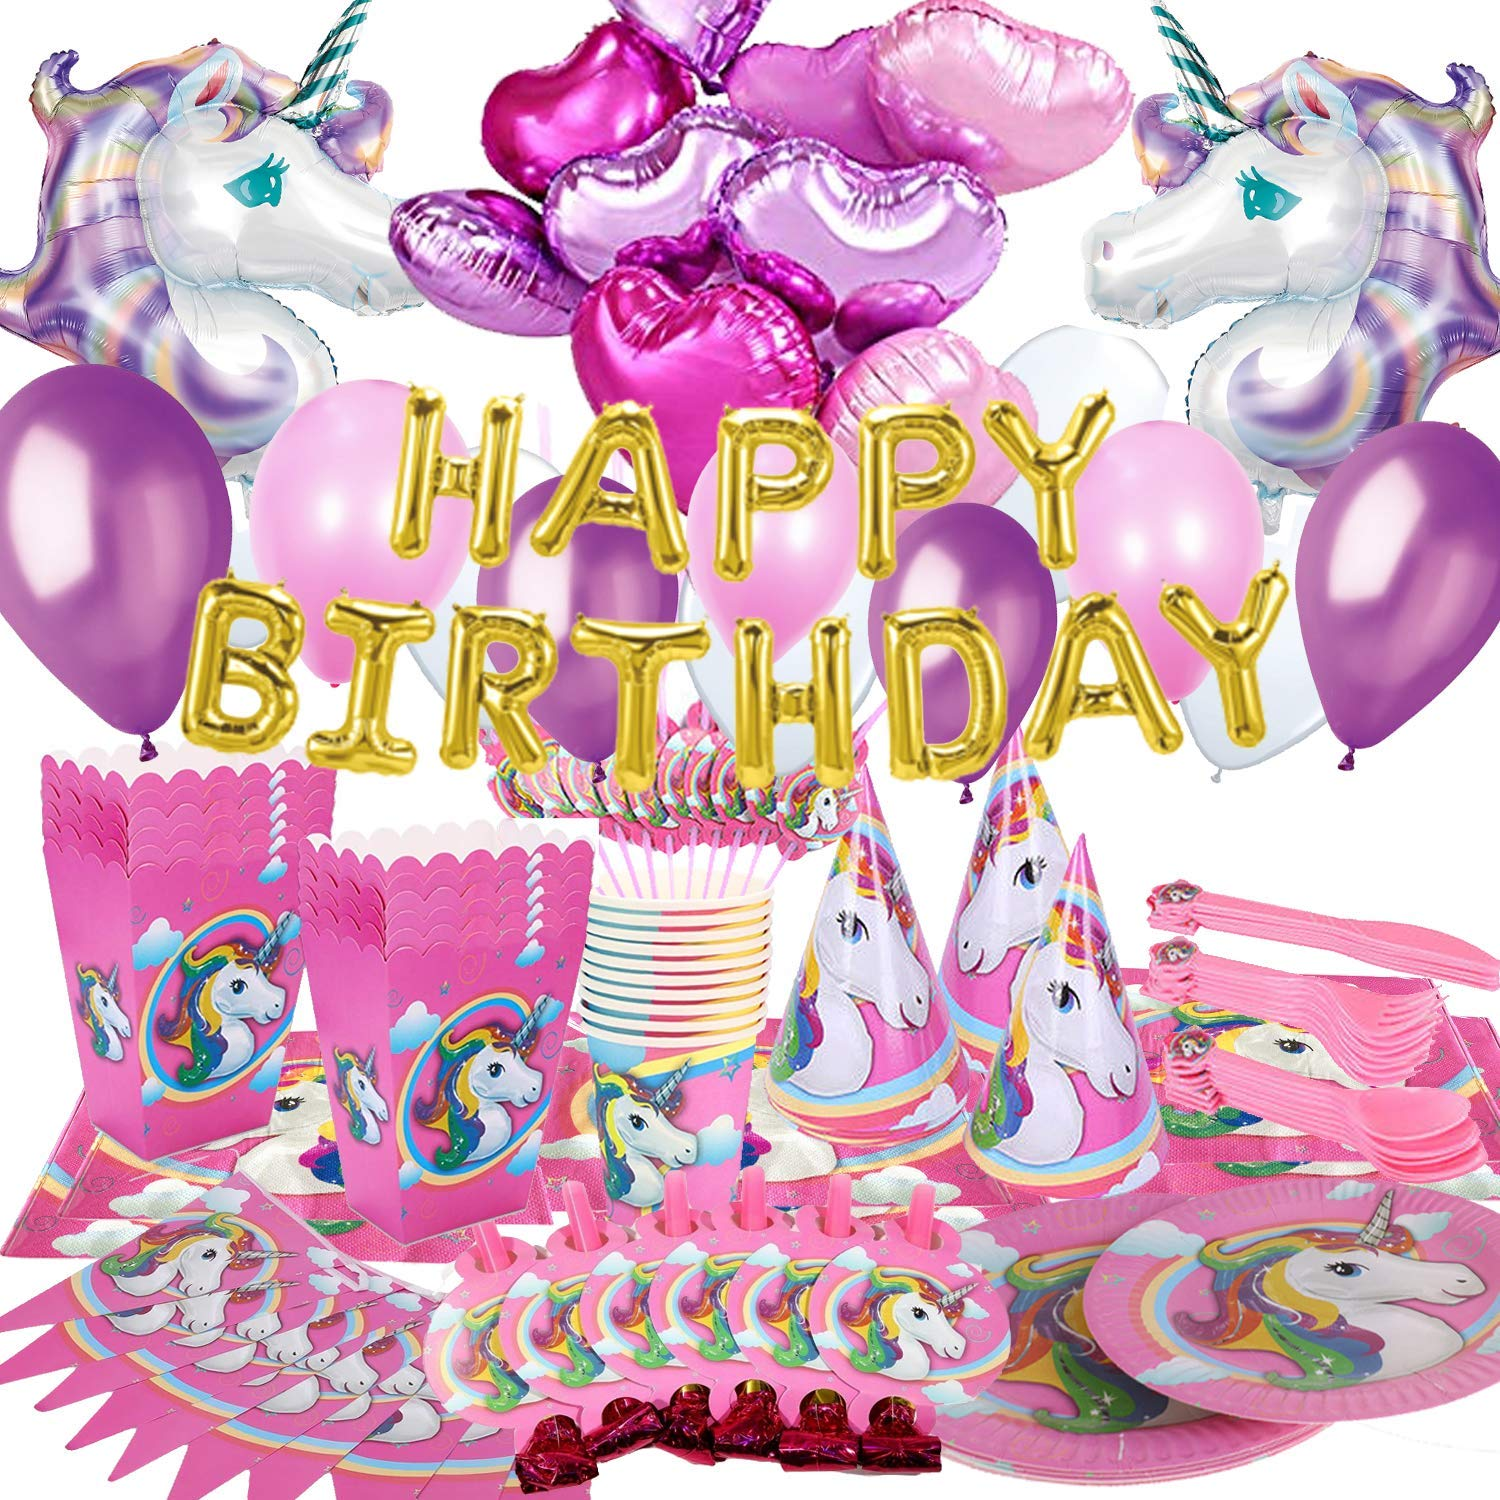 Unicorn Party Supplies   Party Decorations   Birthday Party Supplies    Unicorn Party Decoration   Kids Party Favors   Pink Unicorn Party Supplies  Pack ...